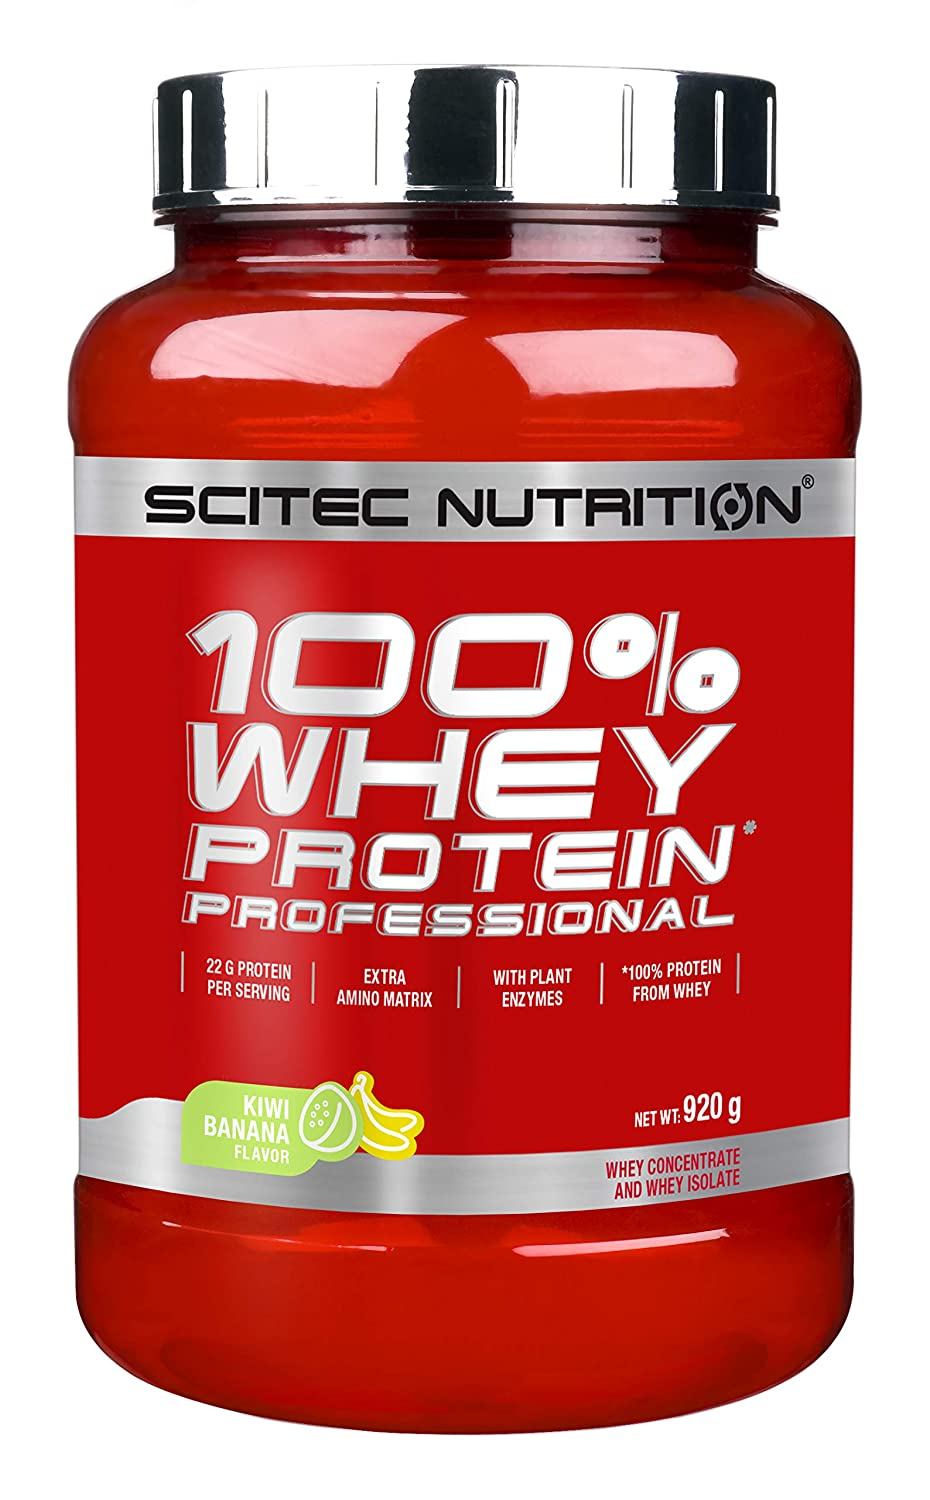 Scitec Nutrition Whey Protein Professional Proteína Yogur, Melocotón - 920 g